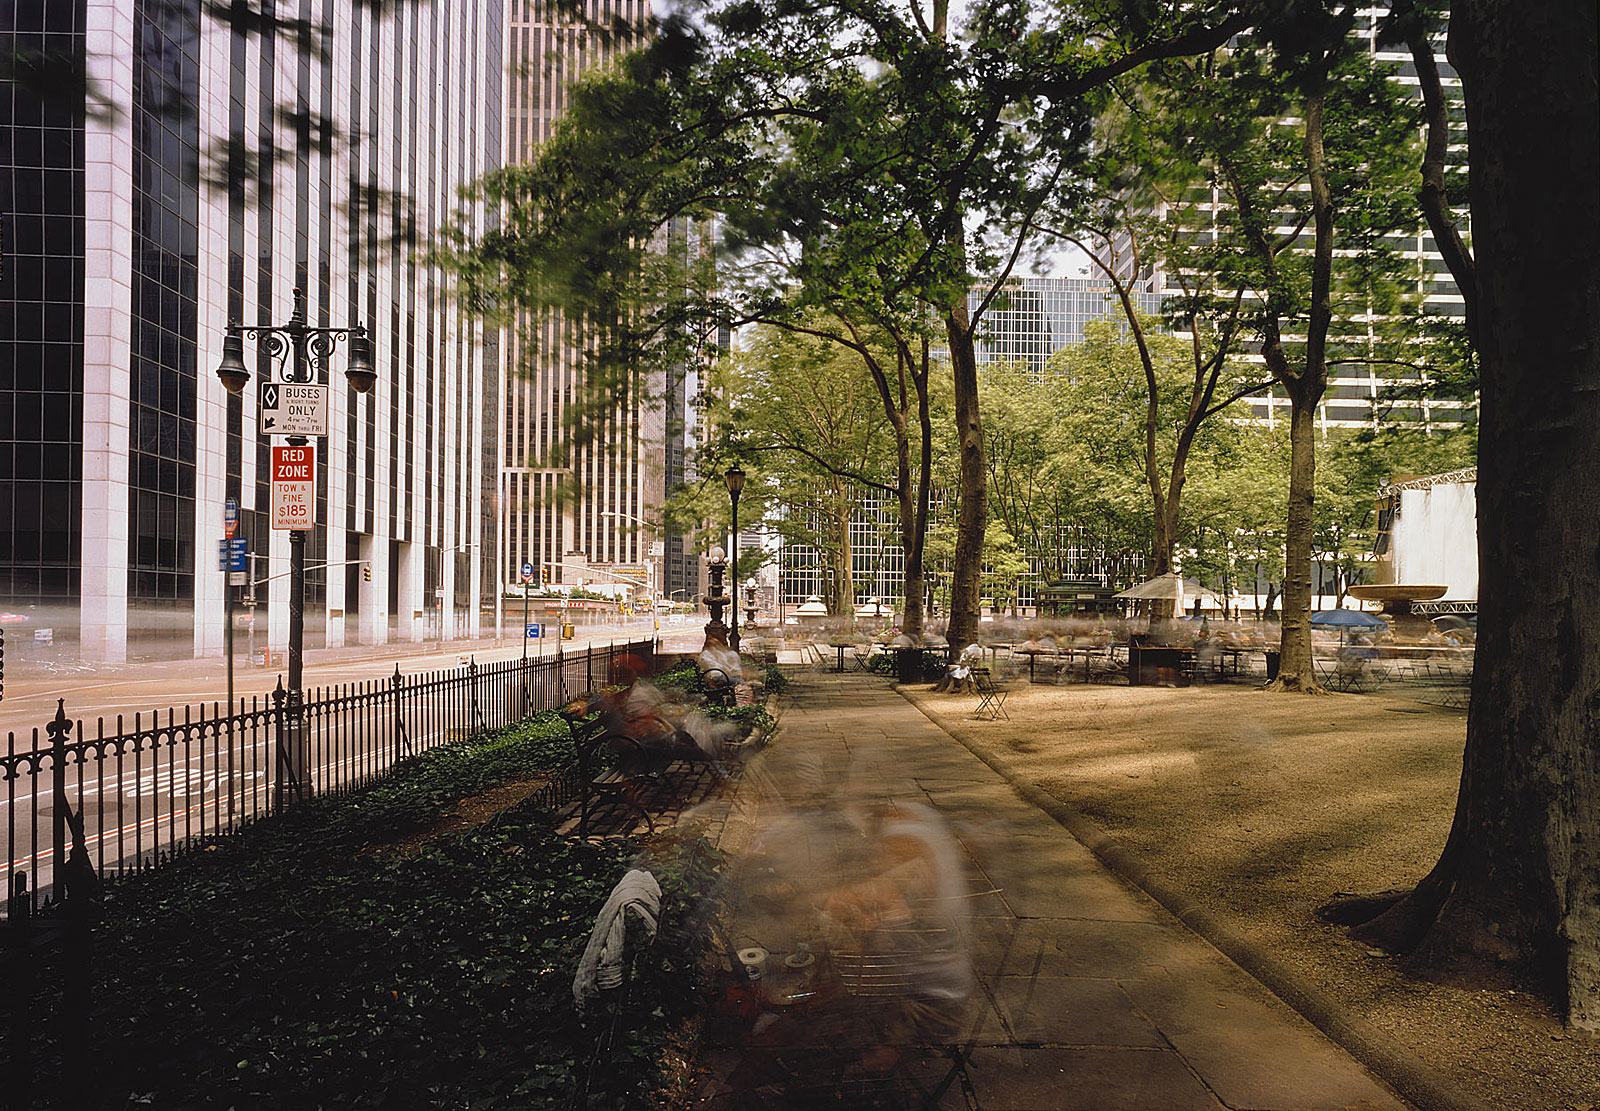 Bryant Park, New York (12.25 - 13.55 Uhr, 24.6.1998)